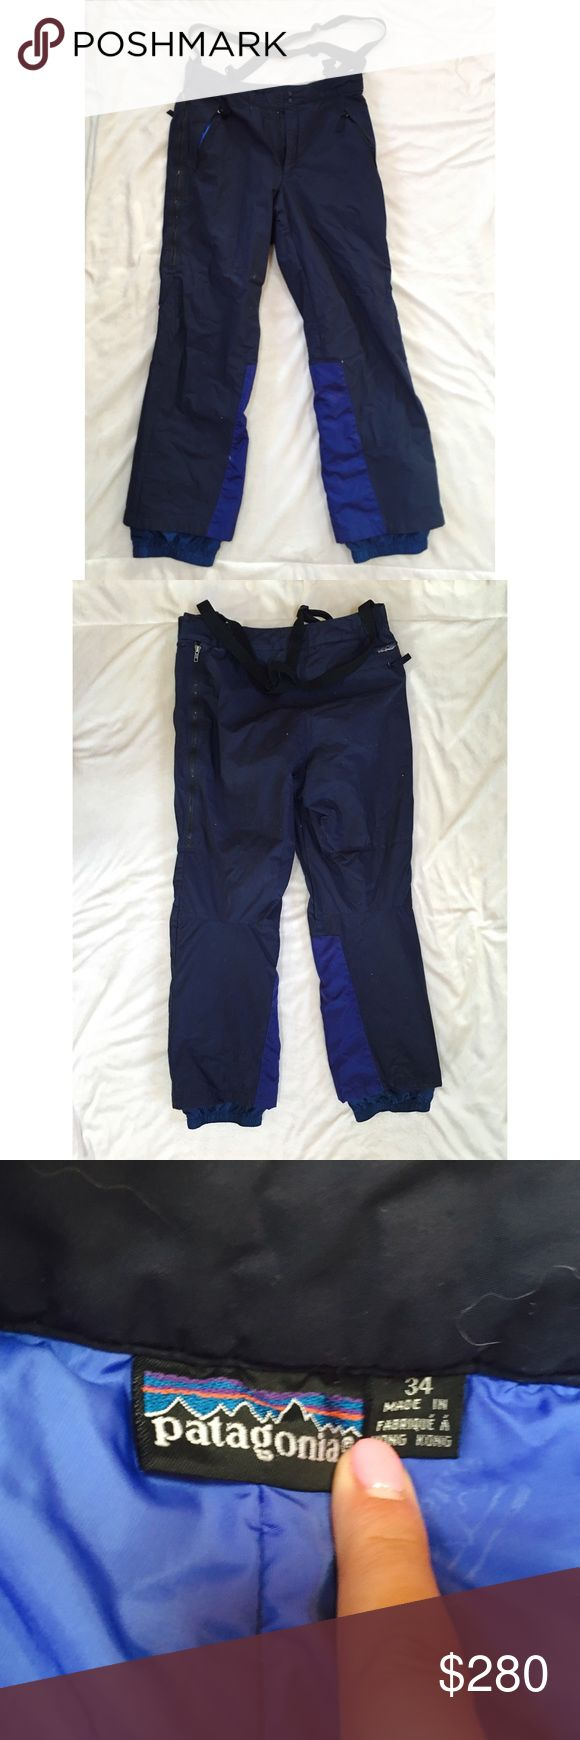 ❄️Patagonia overall bib snow pants❄️ Patagonia overall ski pants. These are great for skiing and snowboarding. Have been used hut are in great condition. These great quality pants will make a great addition to your winter wardrobe! Patagonia Pants Sweatpants & Joggers